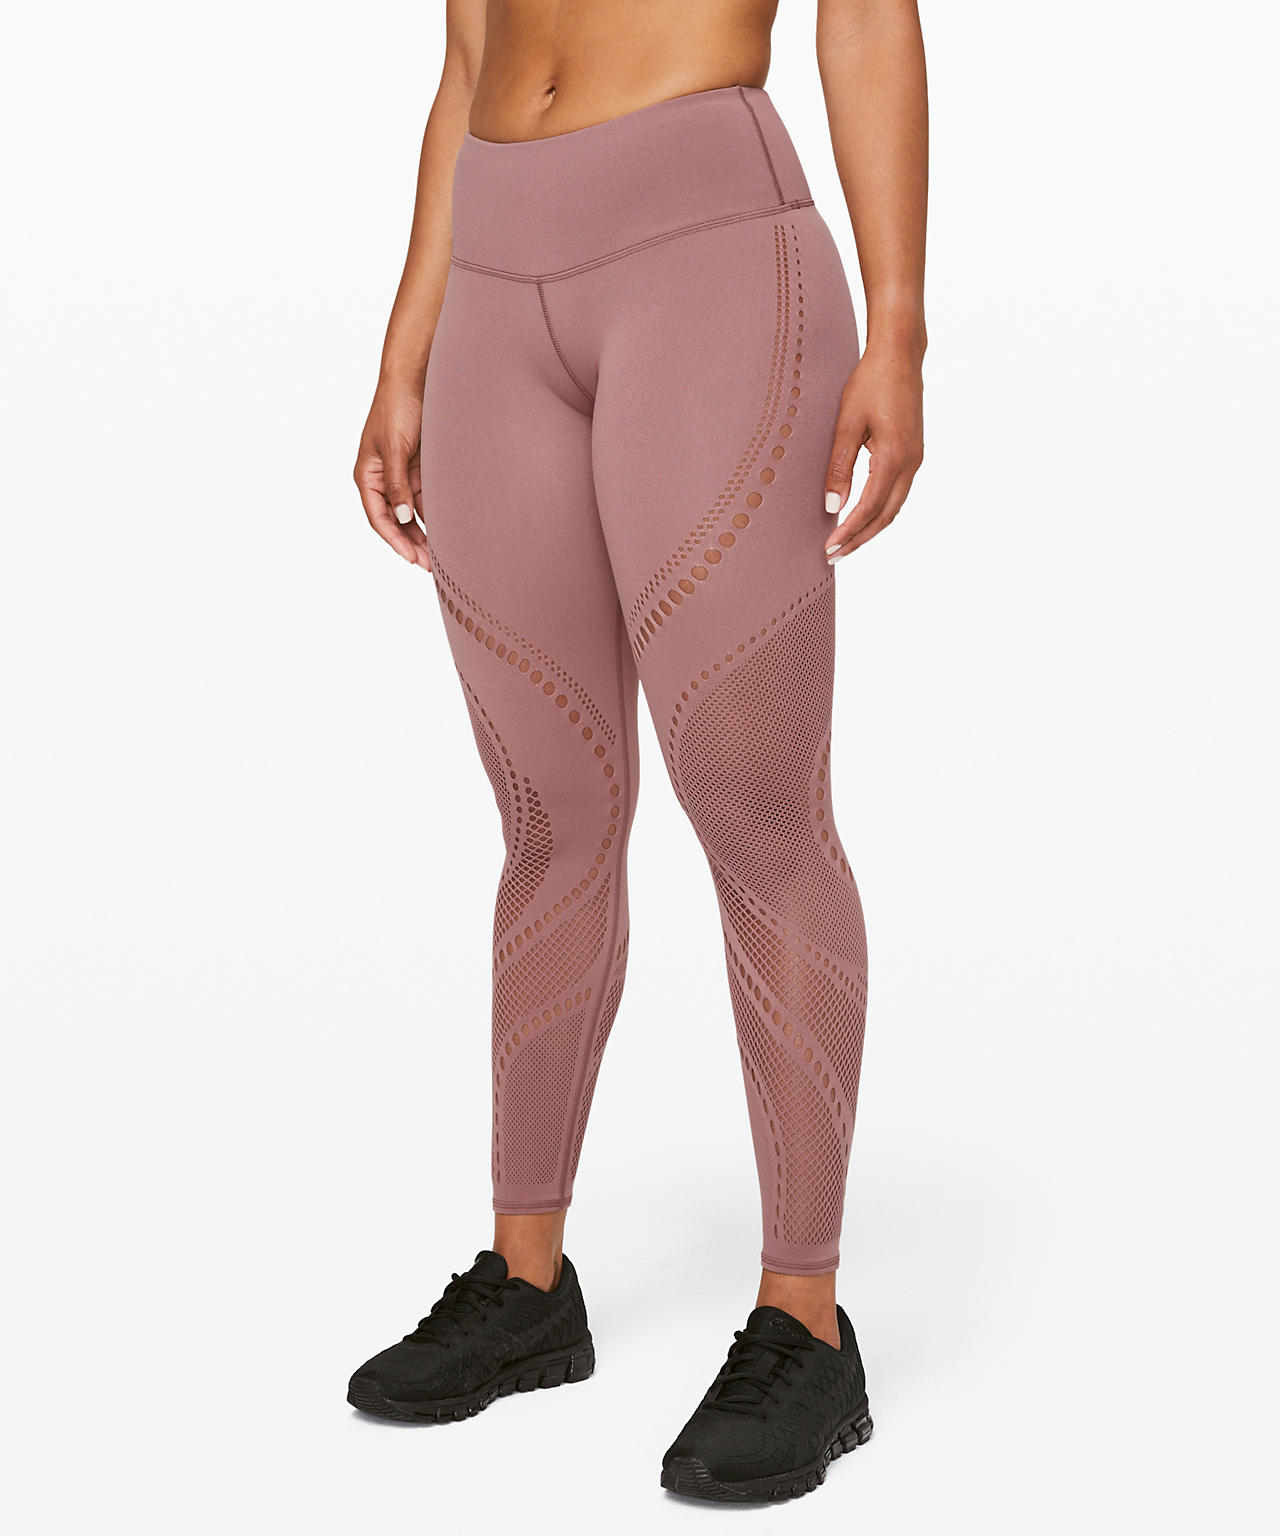 Reveal Tight Precision  lululemon X Barry's